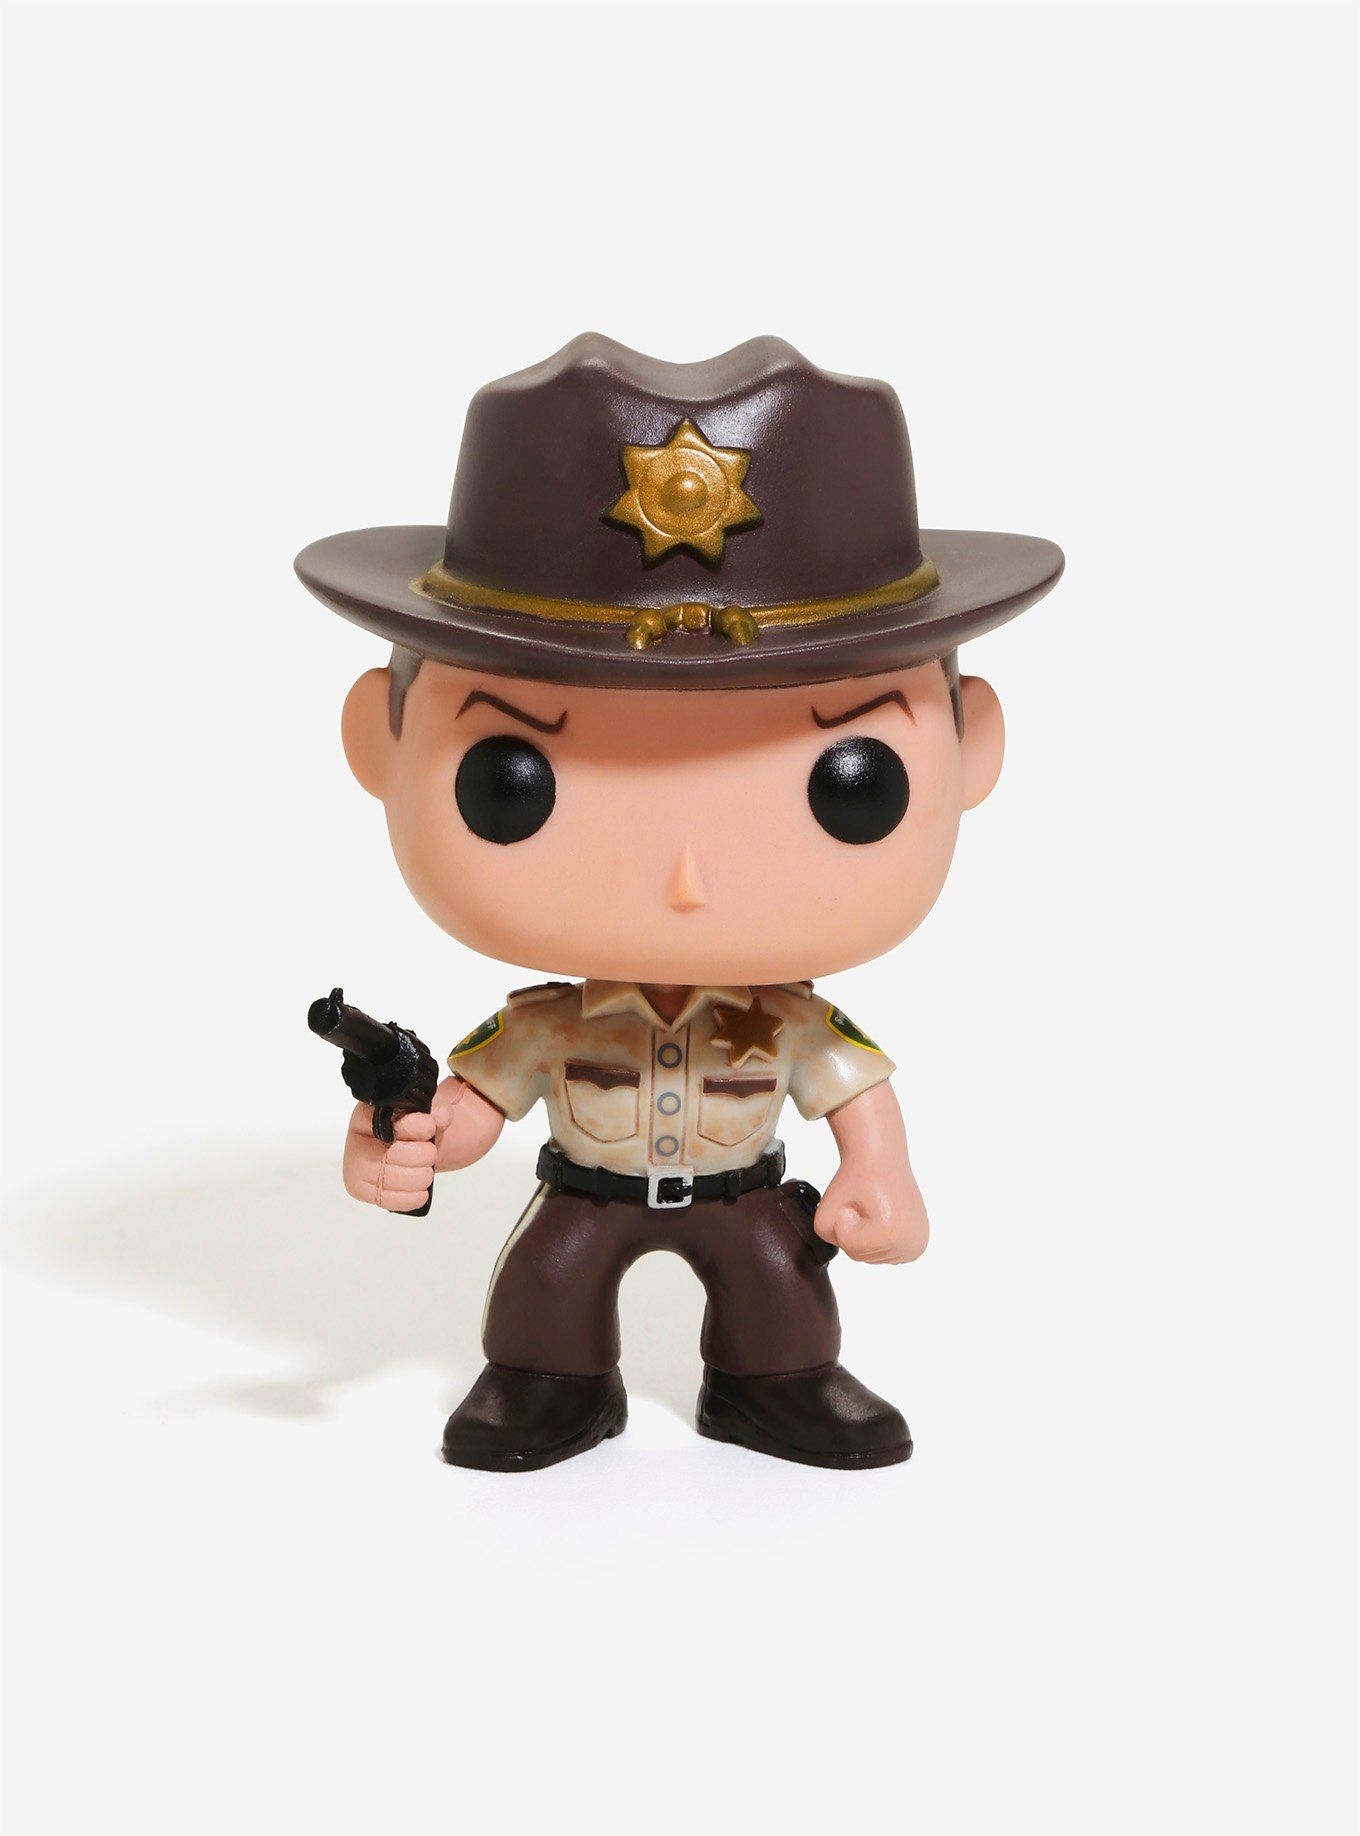 Rick Grimes #13 - The Walking Dead - Funko Pop! Television